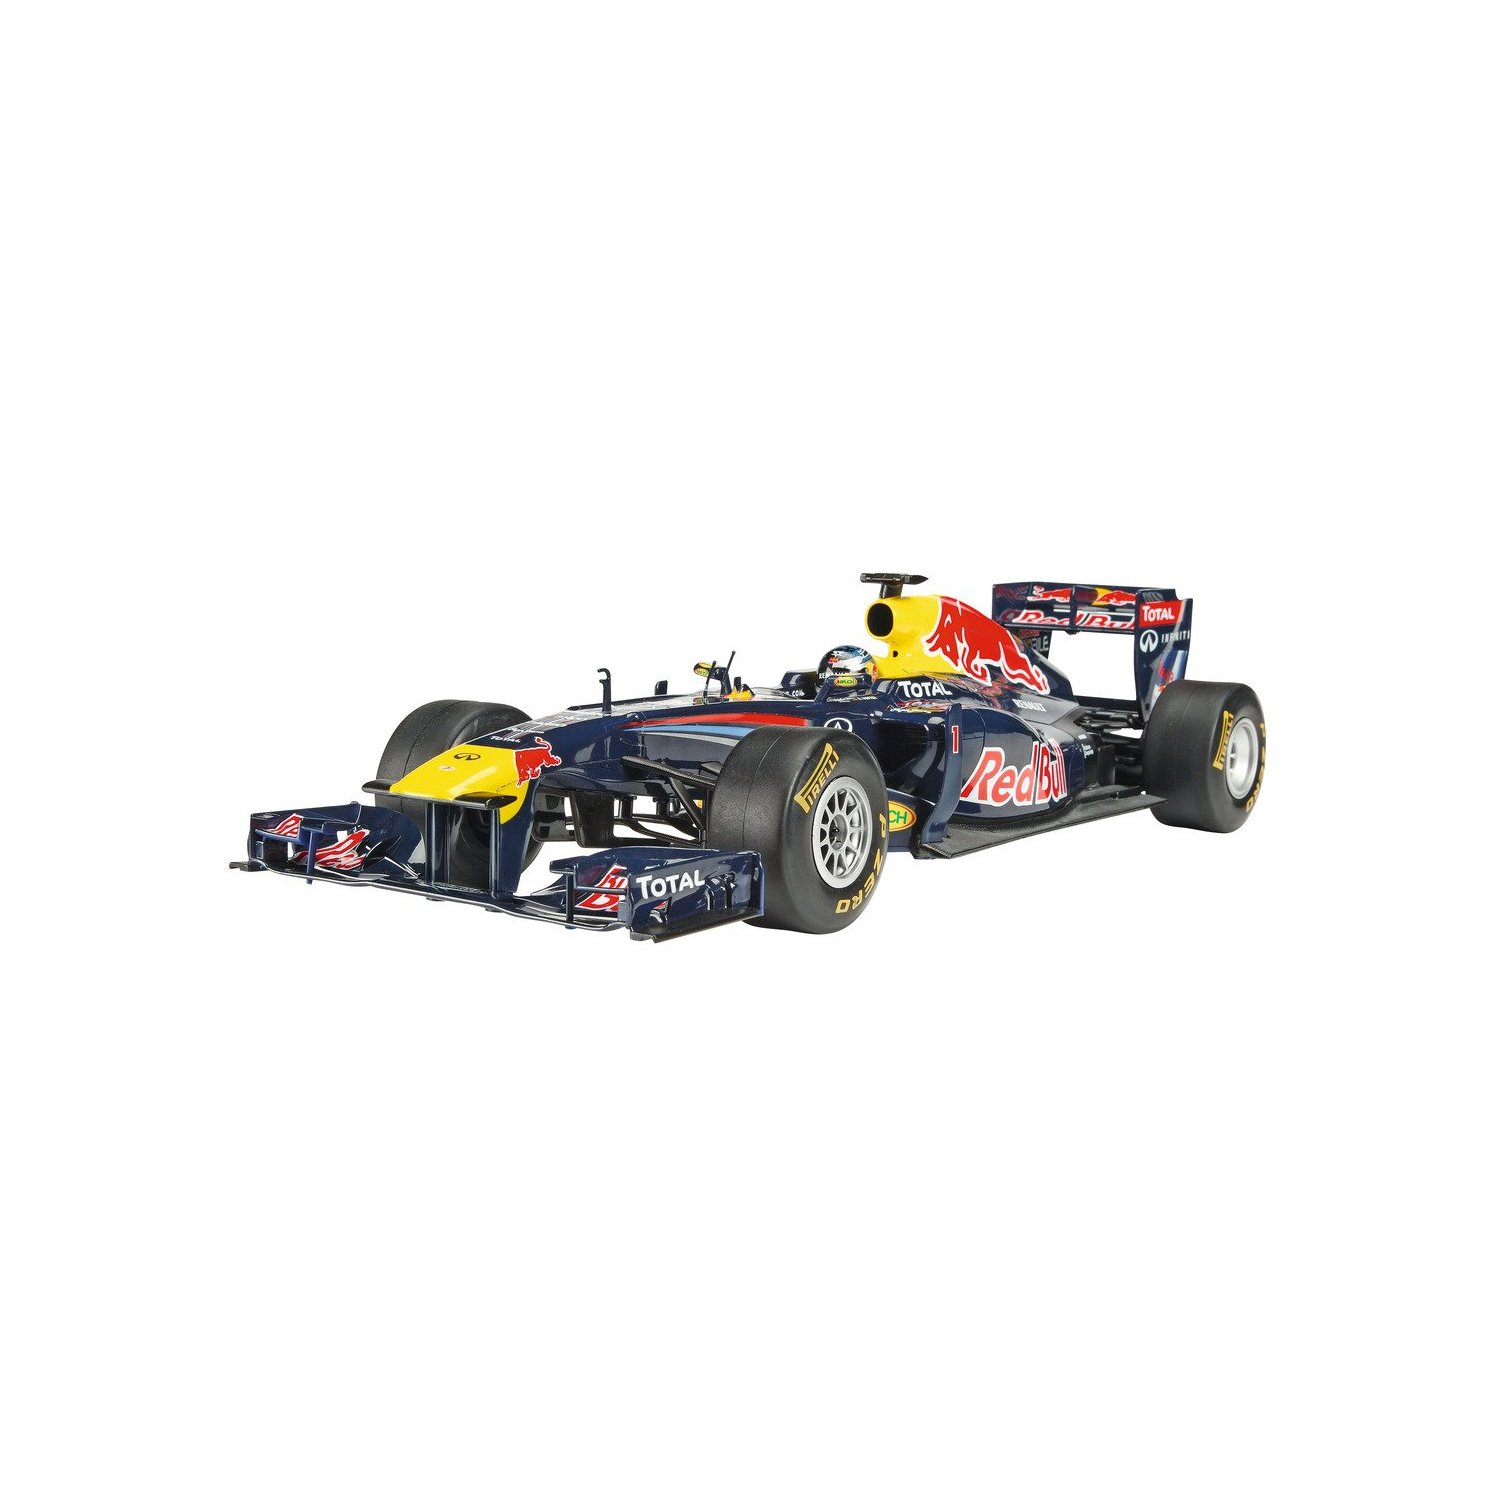 dickie spielzeug 201119392 rc red bull formel 1 ma stab 1 12 2 kanal funkfer ebay. Black Bedroom Furniture Sets. Home Design Ideas